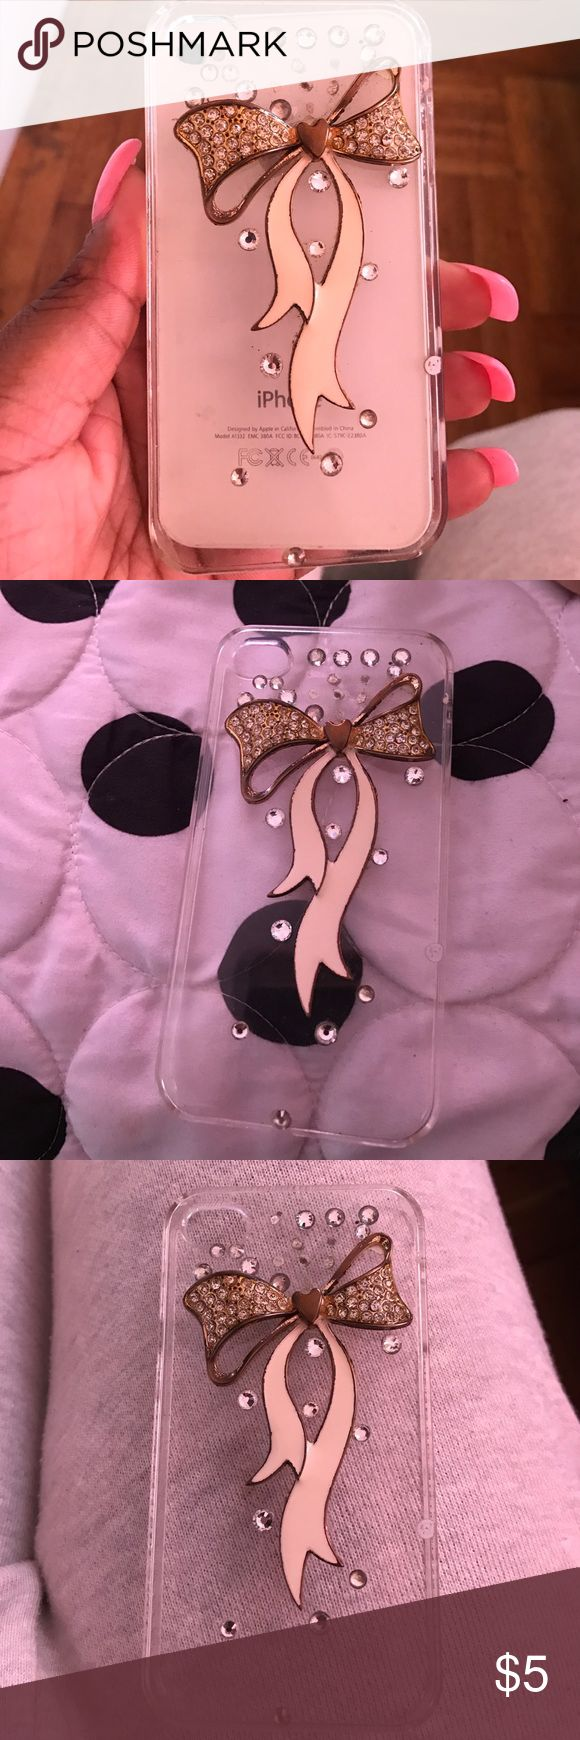 Used IPhone 4/4s Case Some Gems Have Fell Off. You Can Add Gems Yourself. It Has Been Used But I No Longer Use My IPhone So Dnt Wanna Just Throw The Cases Away. Accessories Phone Cases